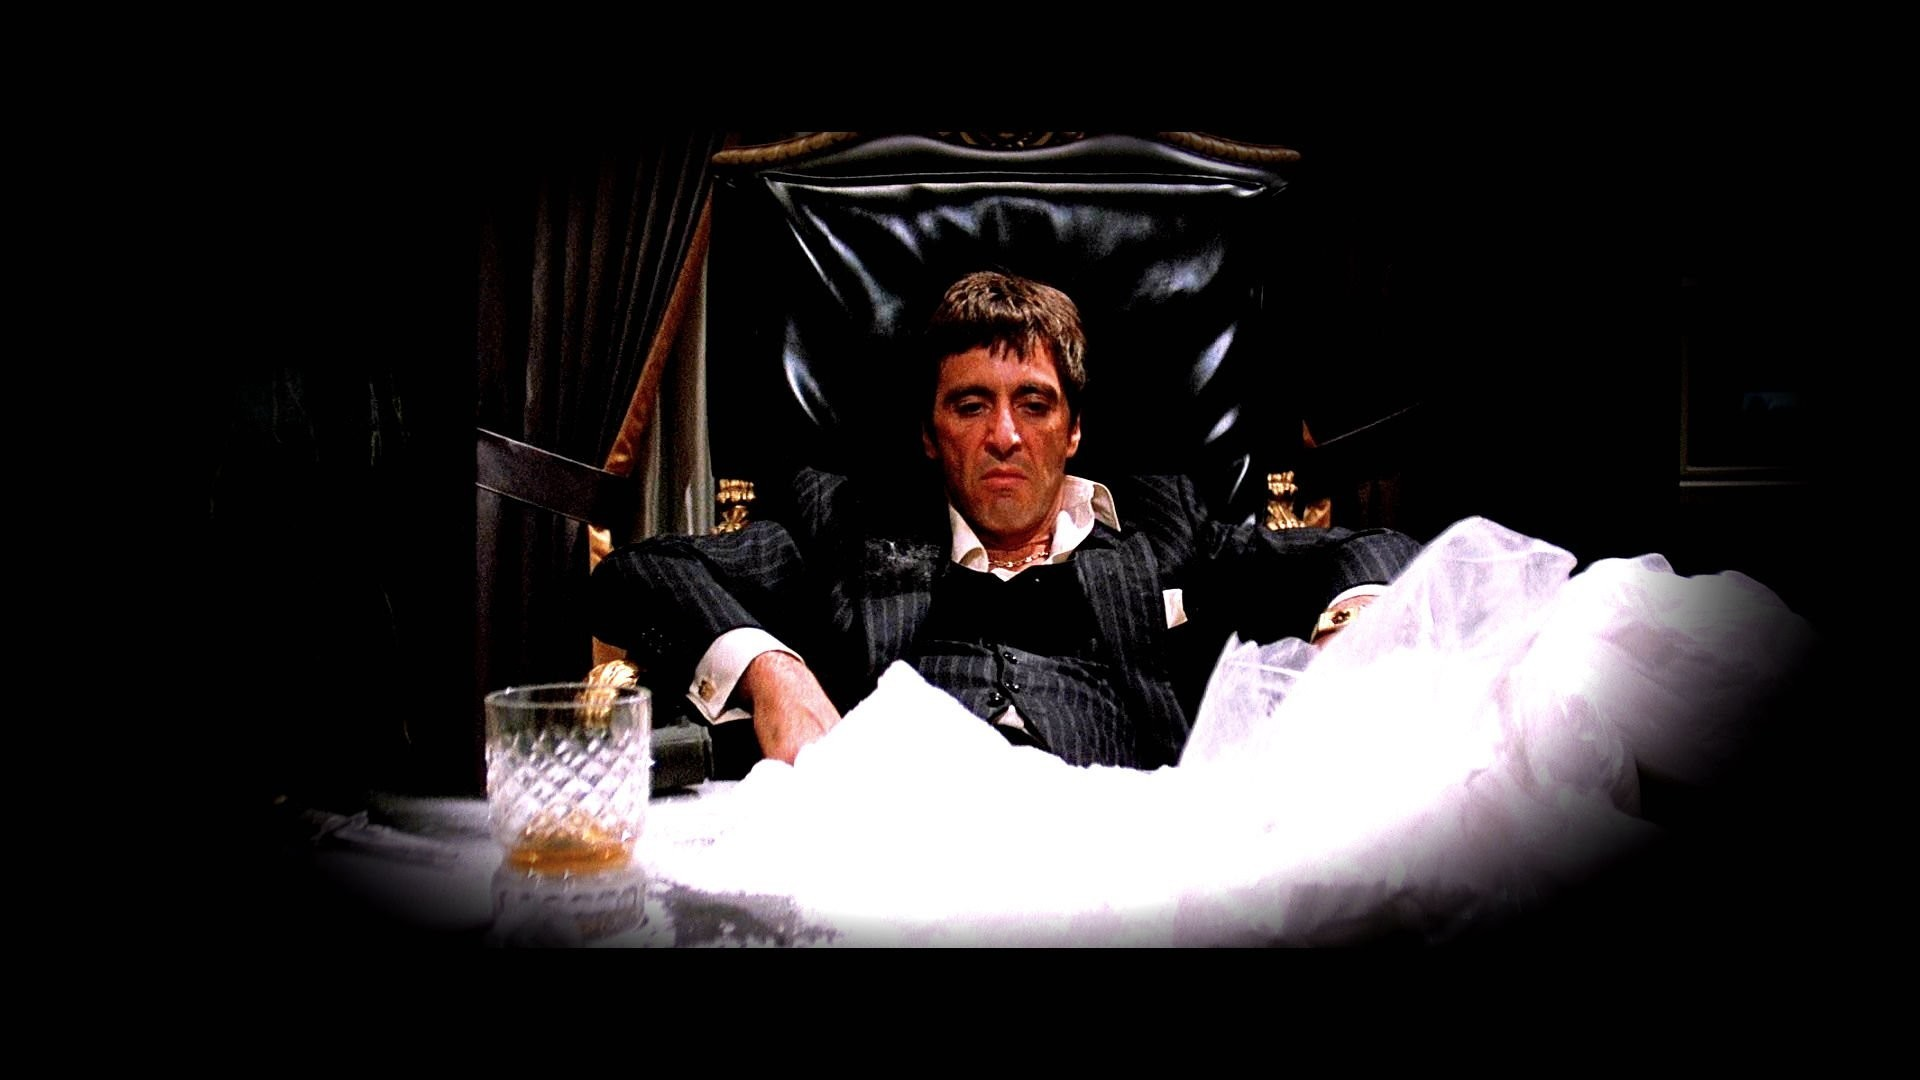 607012-large-scarface-hd-wallpapers-1920x1080-tablet